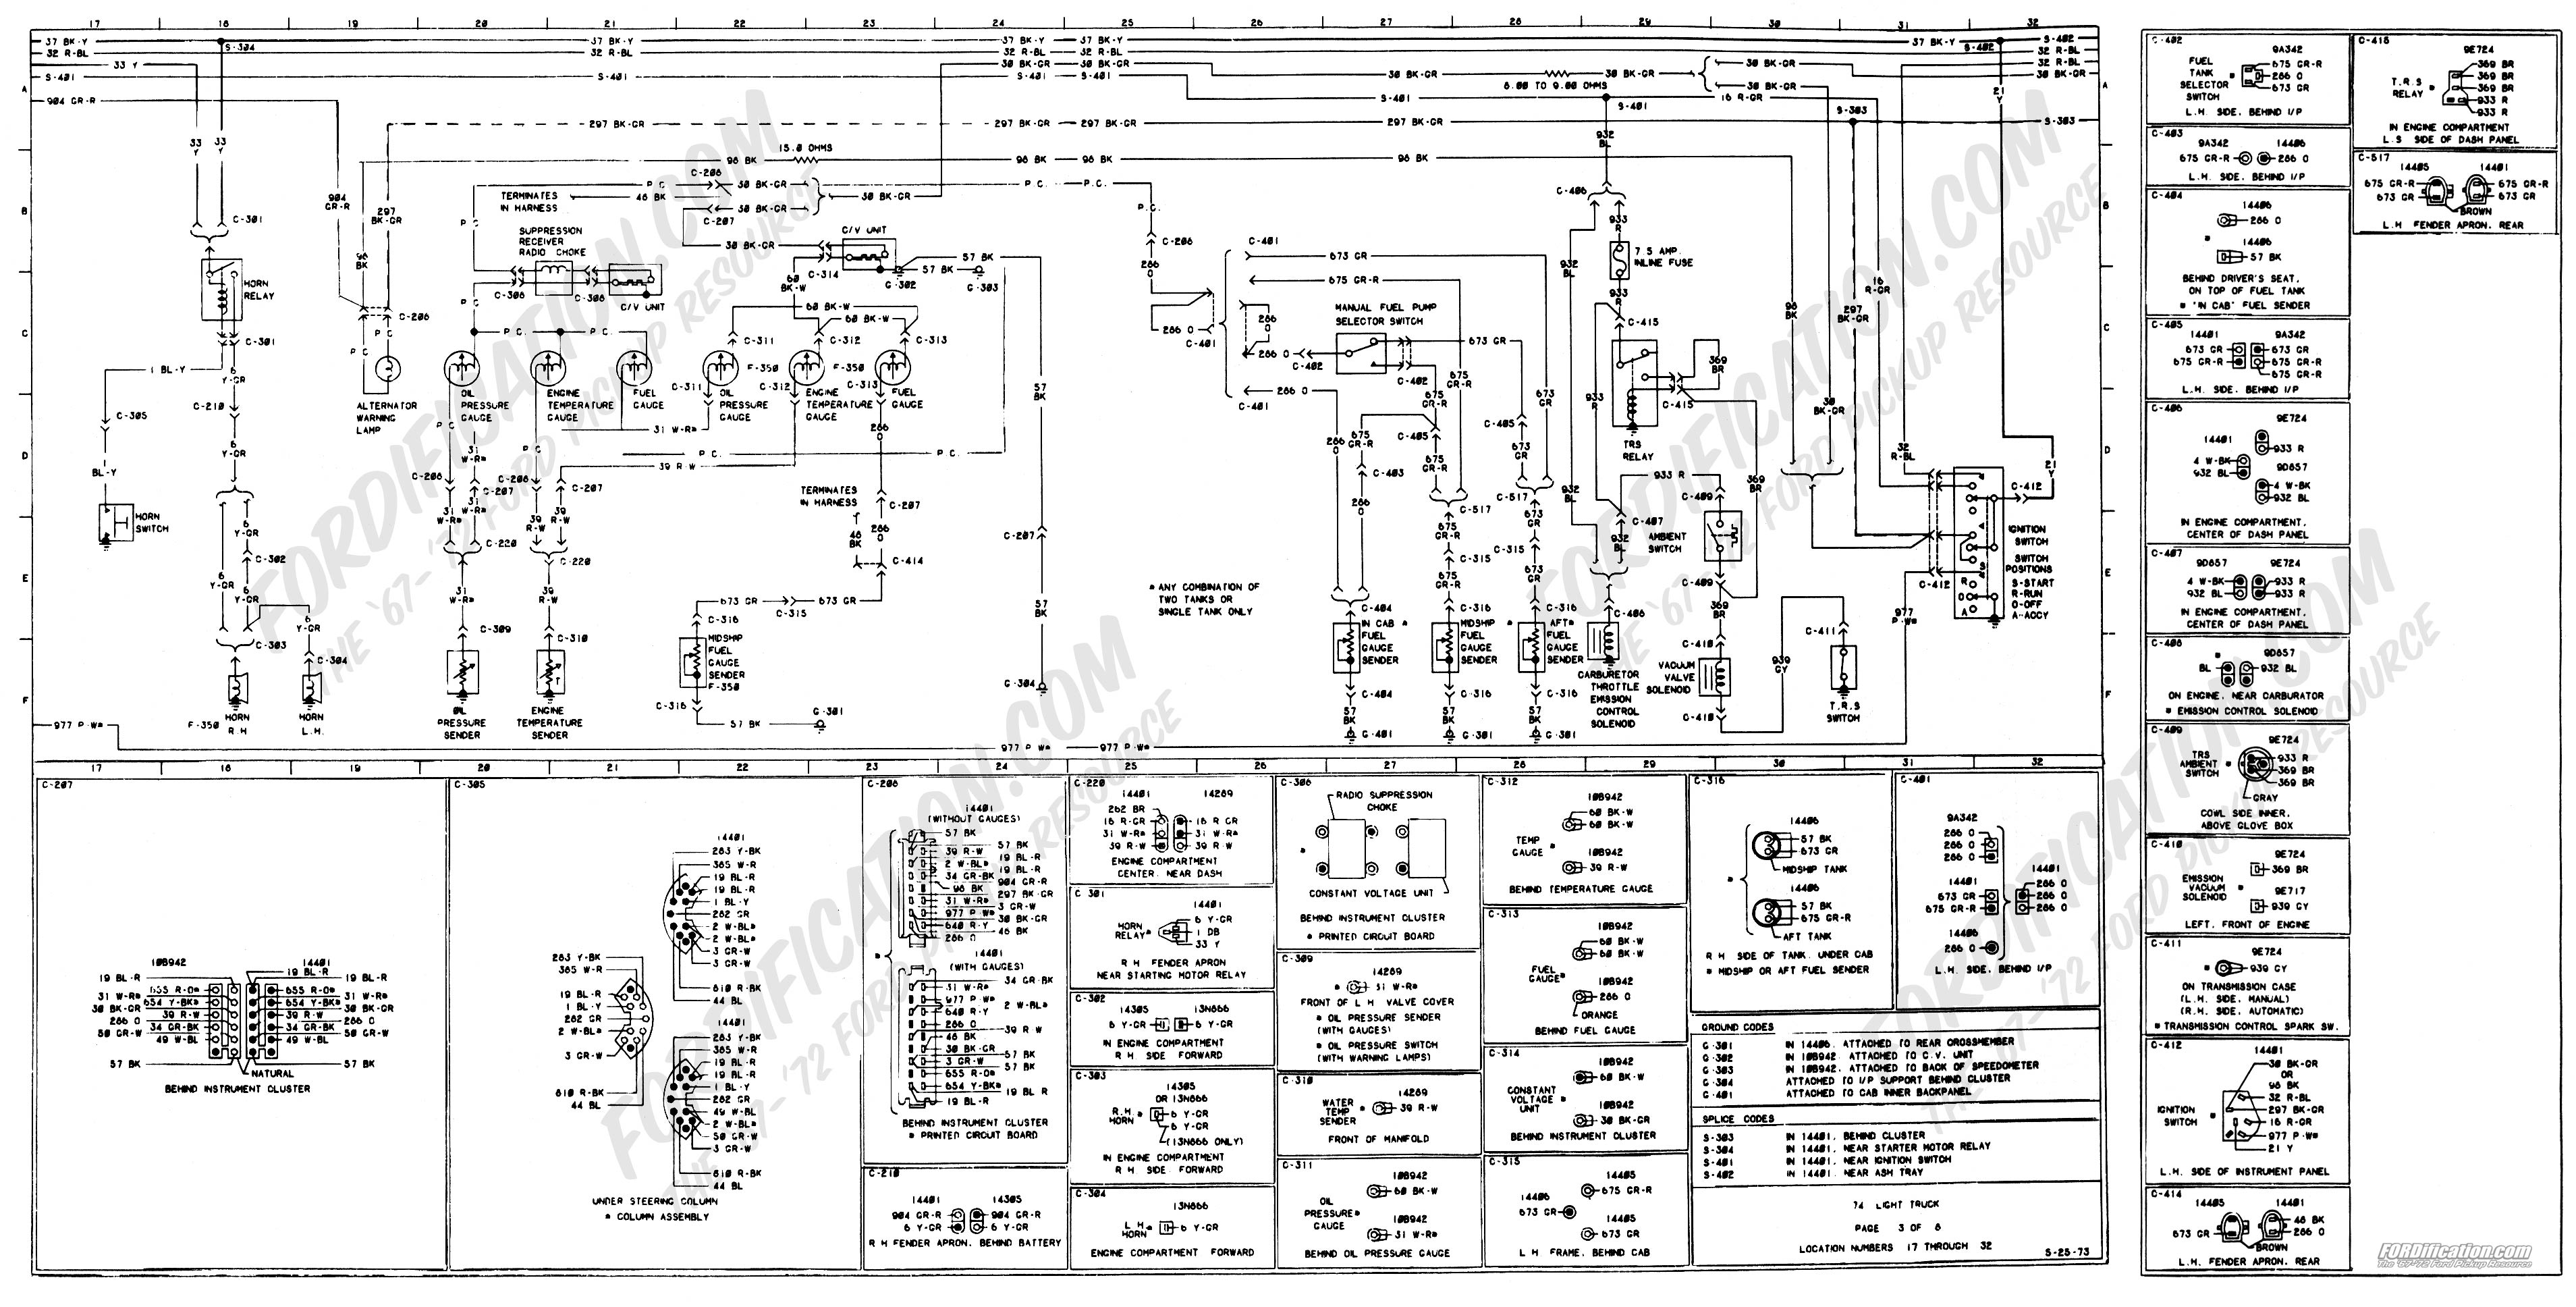 wiring_74master_3of8 1973 ford f250 wiring diagram ford f 150 starter wiring diagram 1979 ford f150 wiring diagram at gsmportal.co